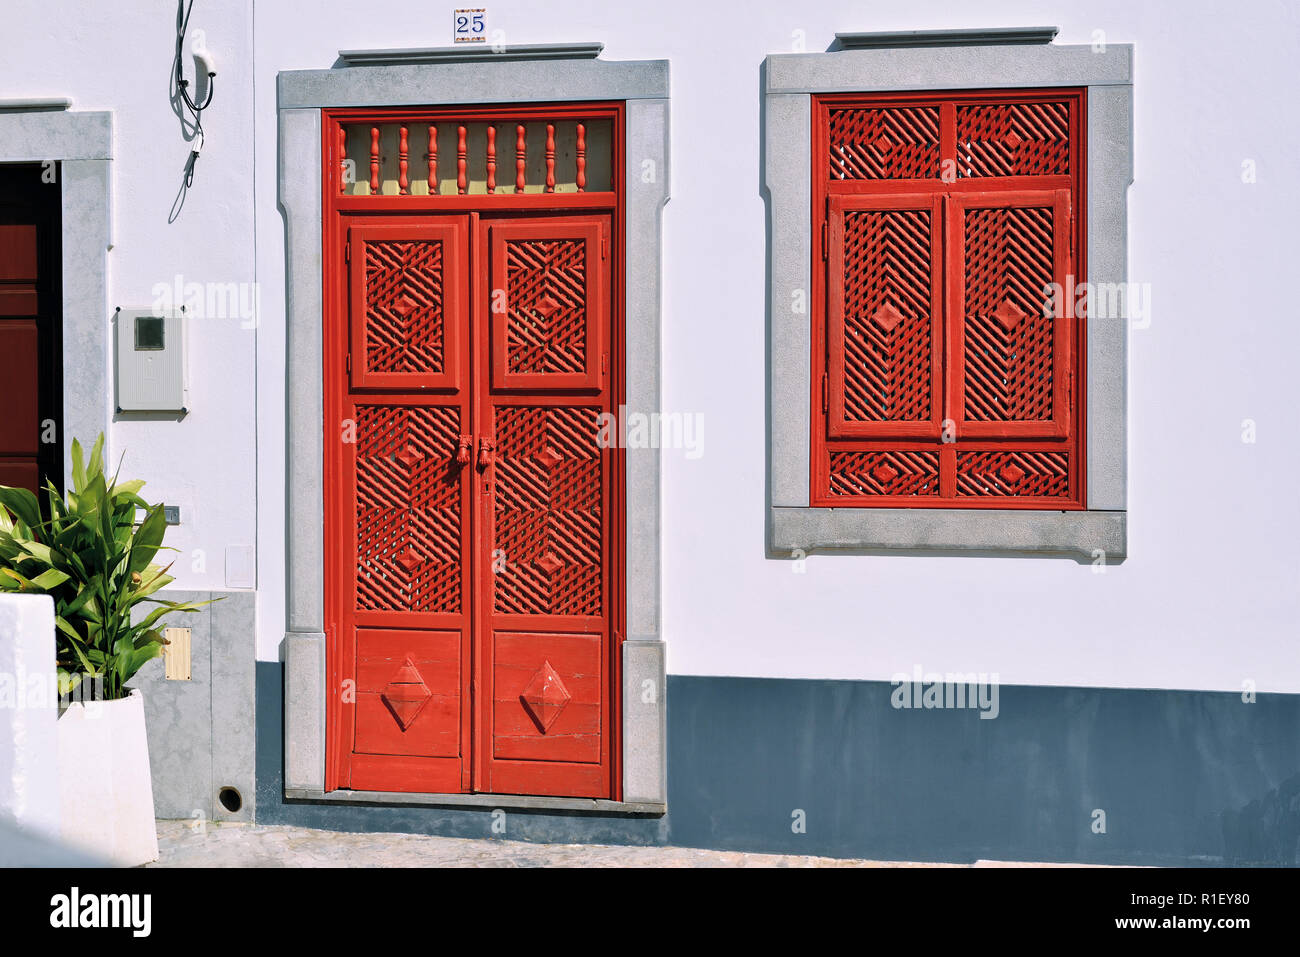 Red door and window in traditional arabian style with various divisions in recently restored small house - Stock Image